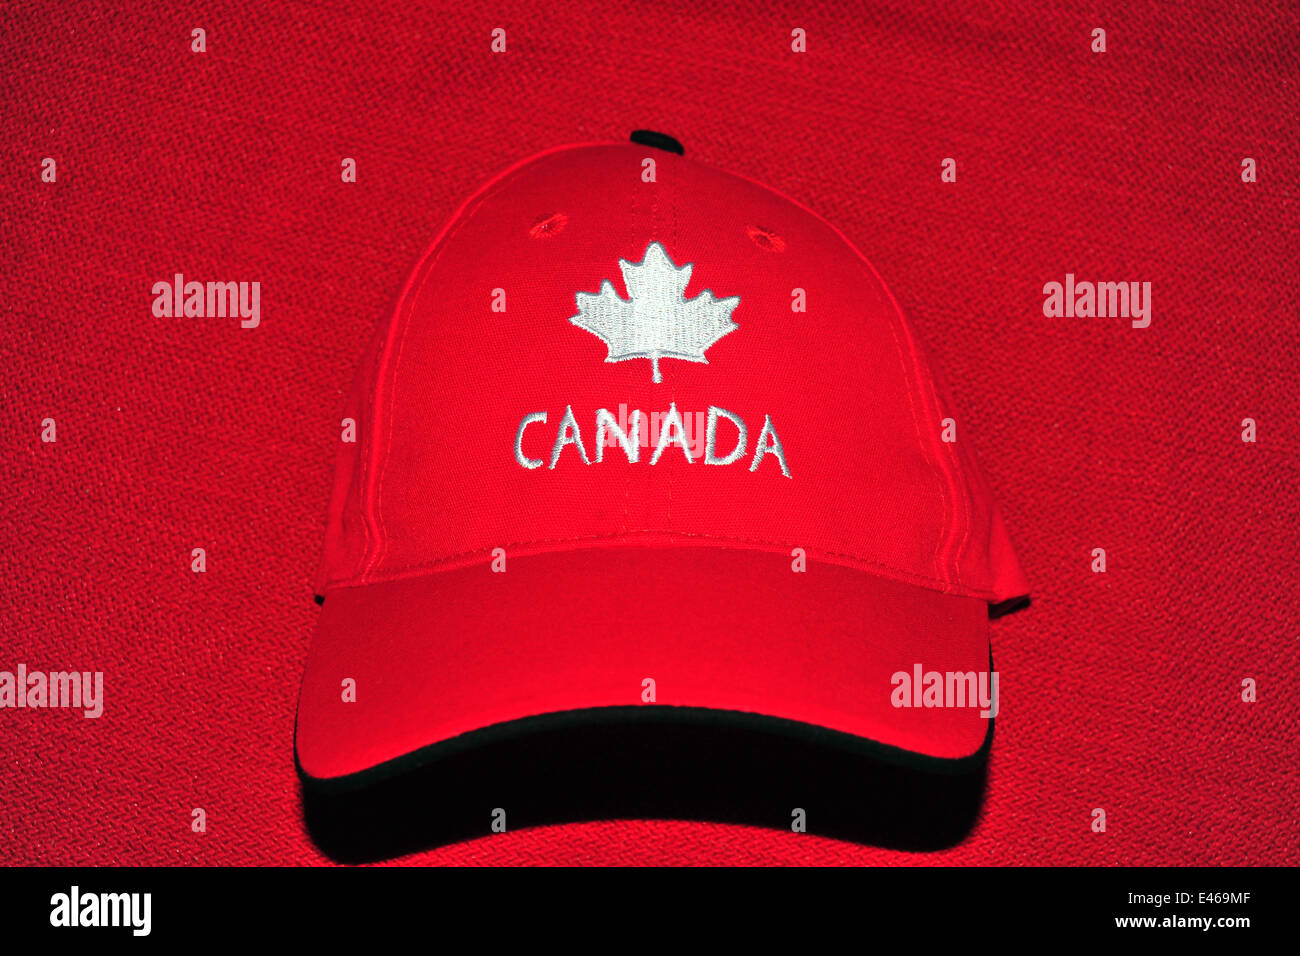 e41002f9485 Canadian Hat Stock Photos   Canadian Hat Stock Images - Alamy